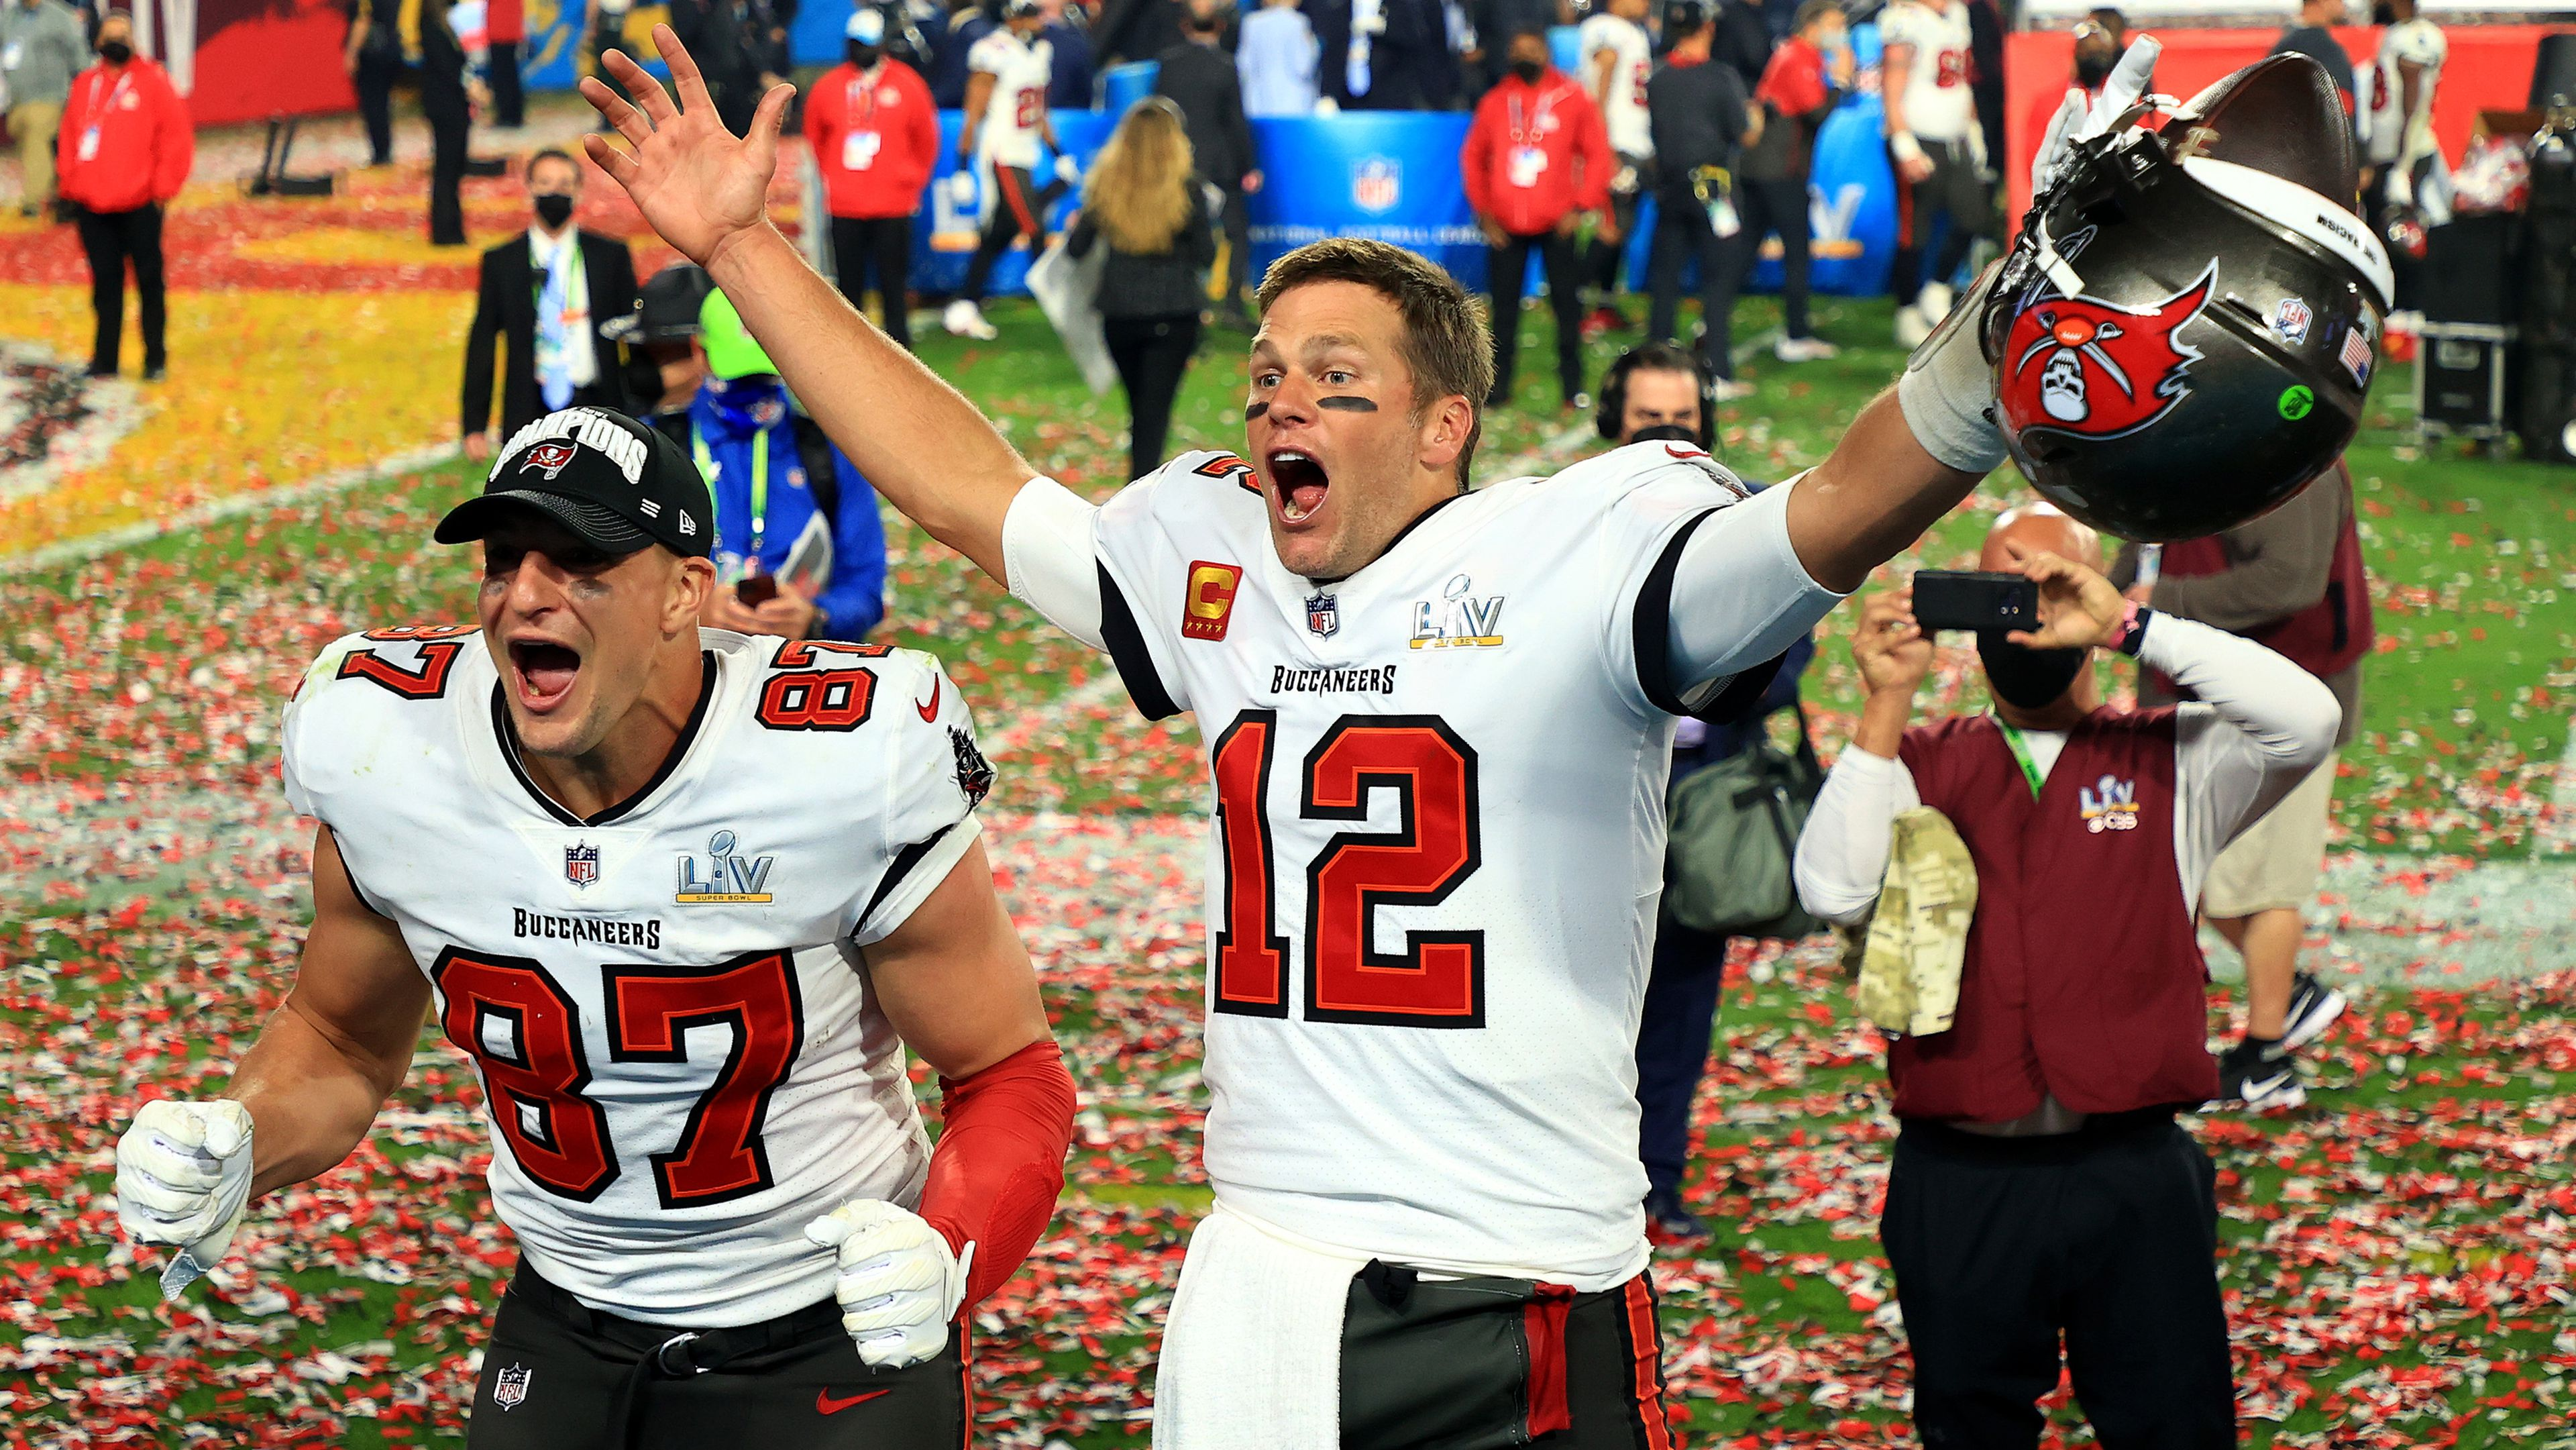 TAMPA, FLORIDA - FEBRUARY 07: Rob Gronkowski #87 and Tom Brady #12 of the Tampa Bay Buccaneers celebrate after defeating the Kansas City Chiefs in Super Bowl LV at Raymond James Stadium on February 07, 2021 in Tampa, Florida. The Buccaneers defeated the Chiefs 31-9. (Photo by Mike Ehrmann/Getty Images)